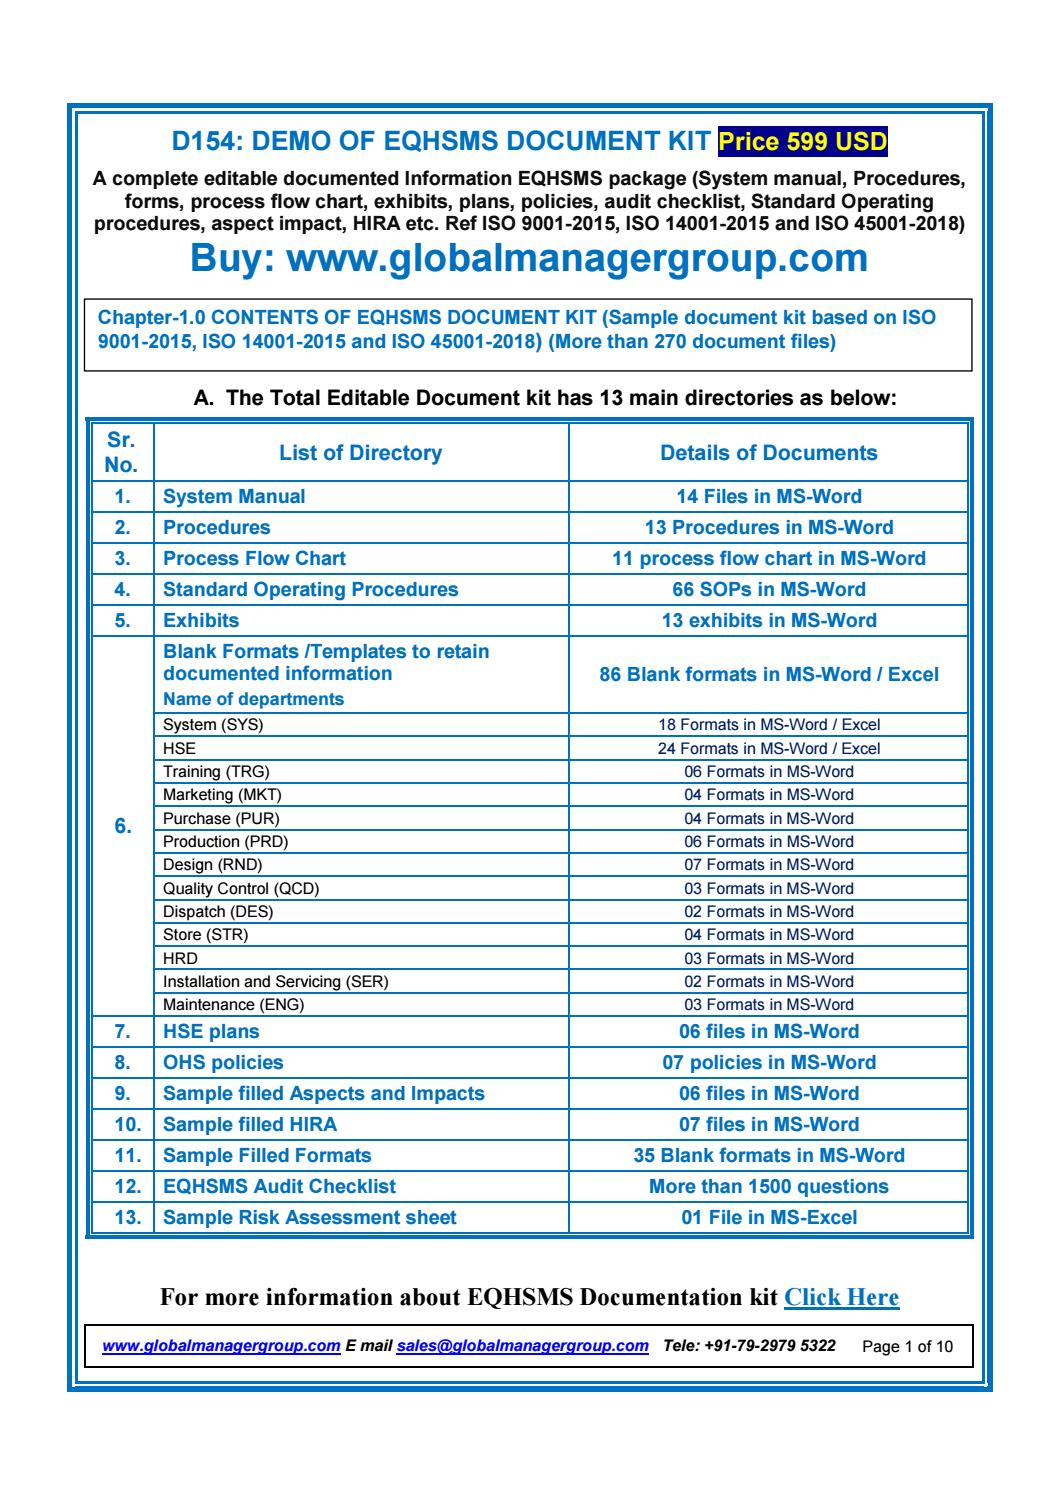 EQHSMS Documents With ISO 90012015 ISO 140012015 ISO 450012018 Requirements By Global